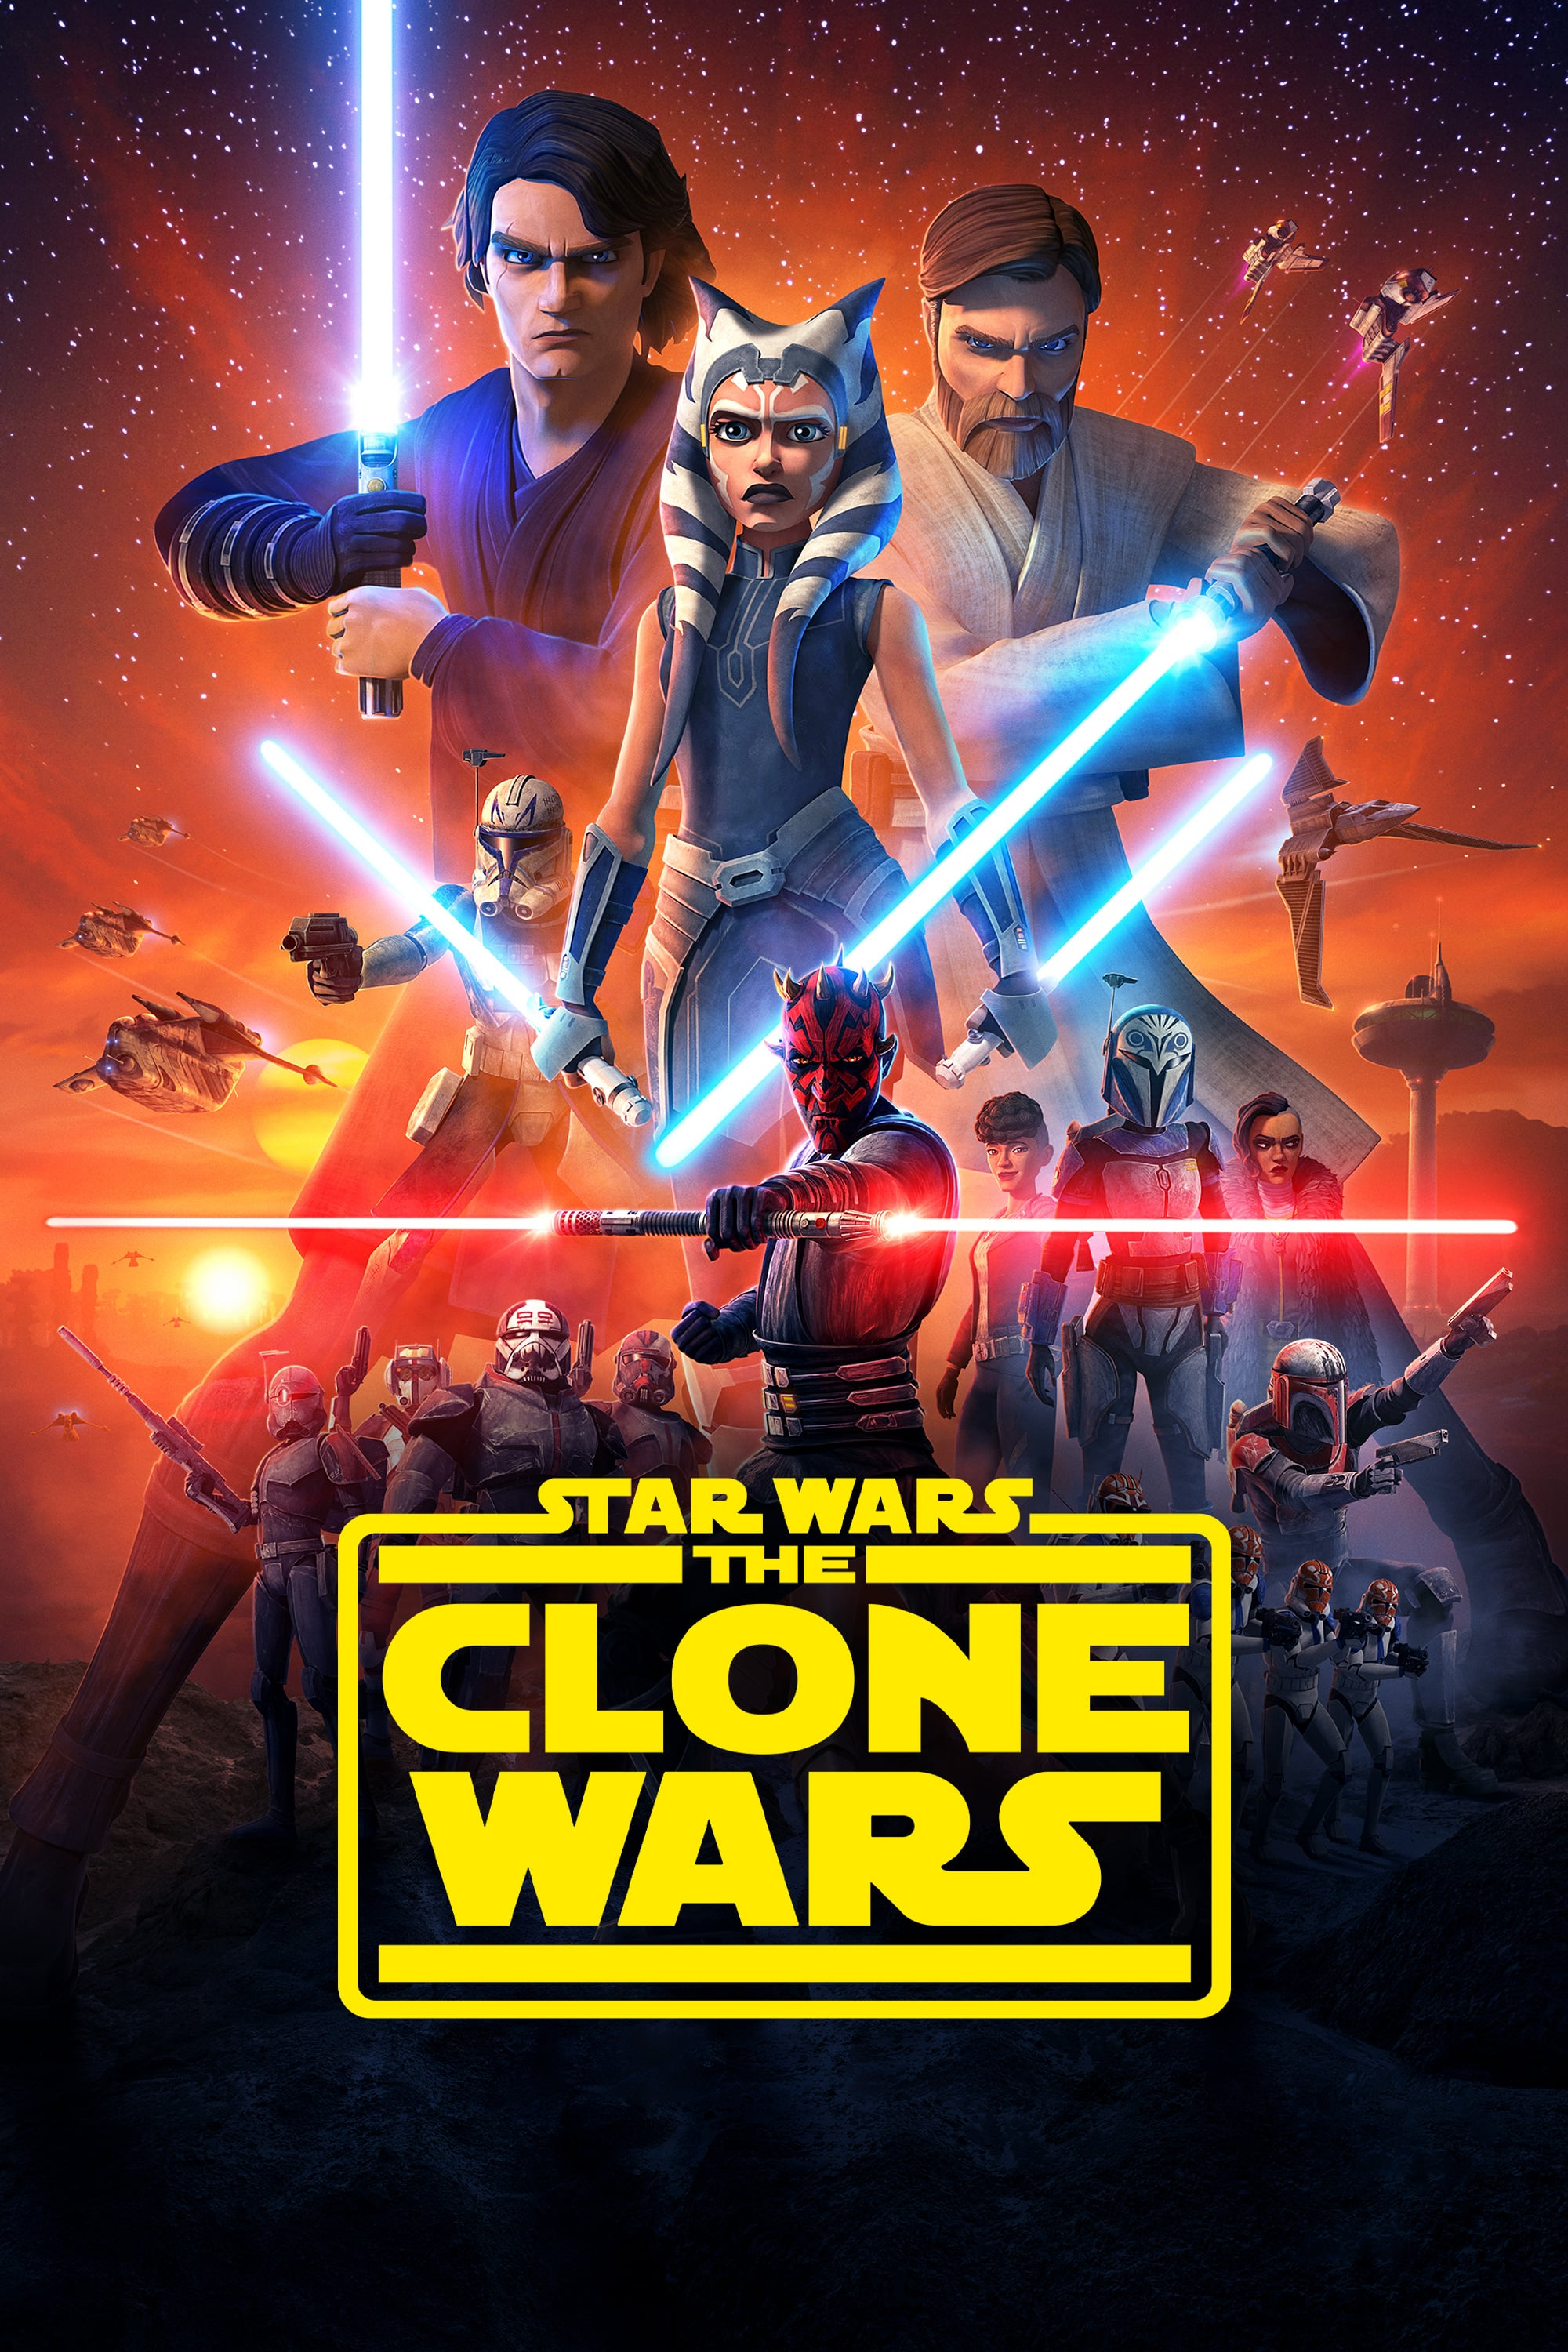 Star Wars: The Clone Wars' />